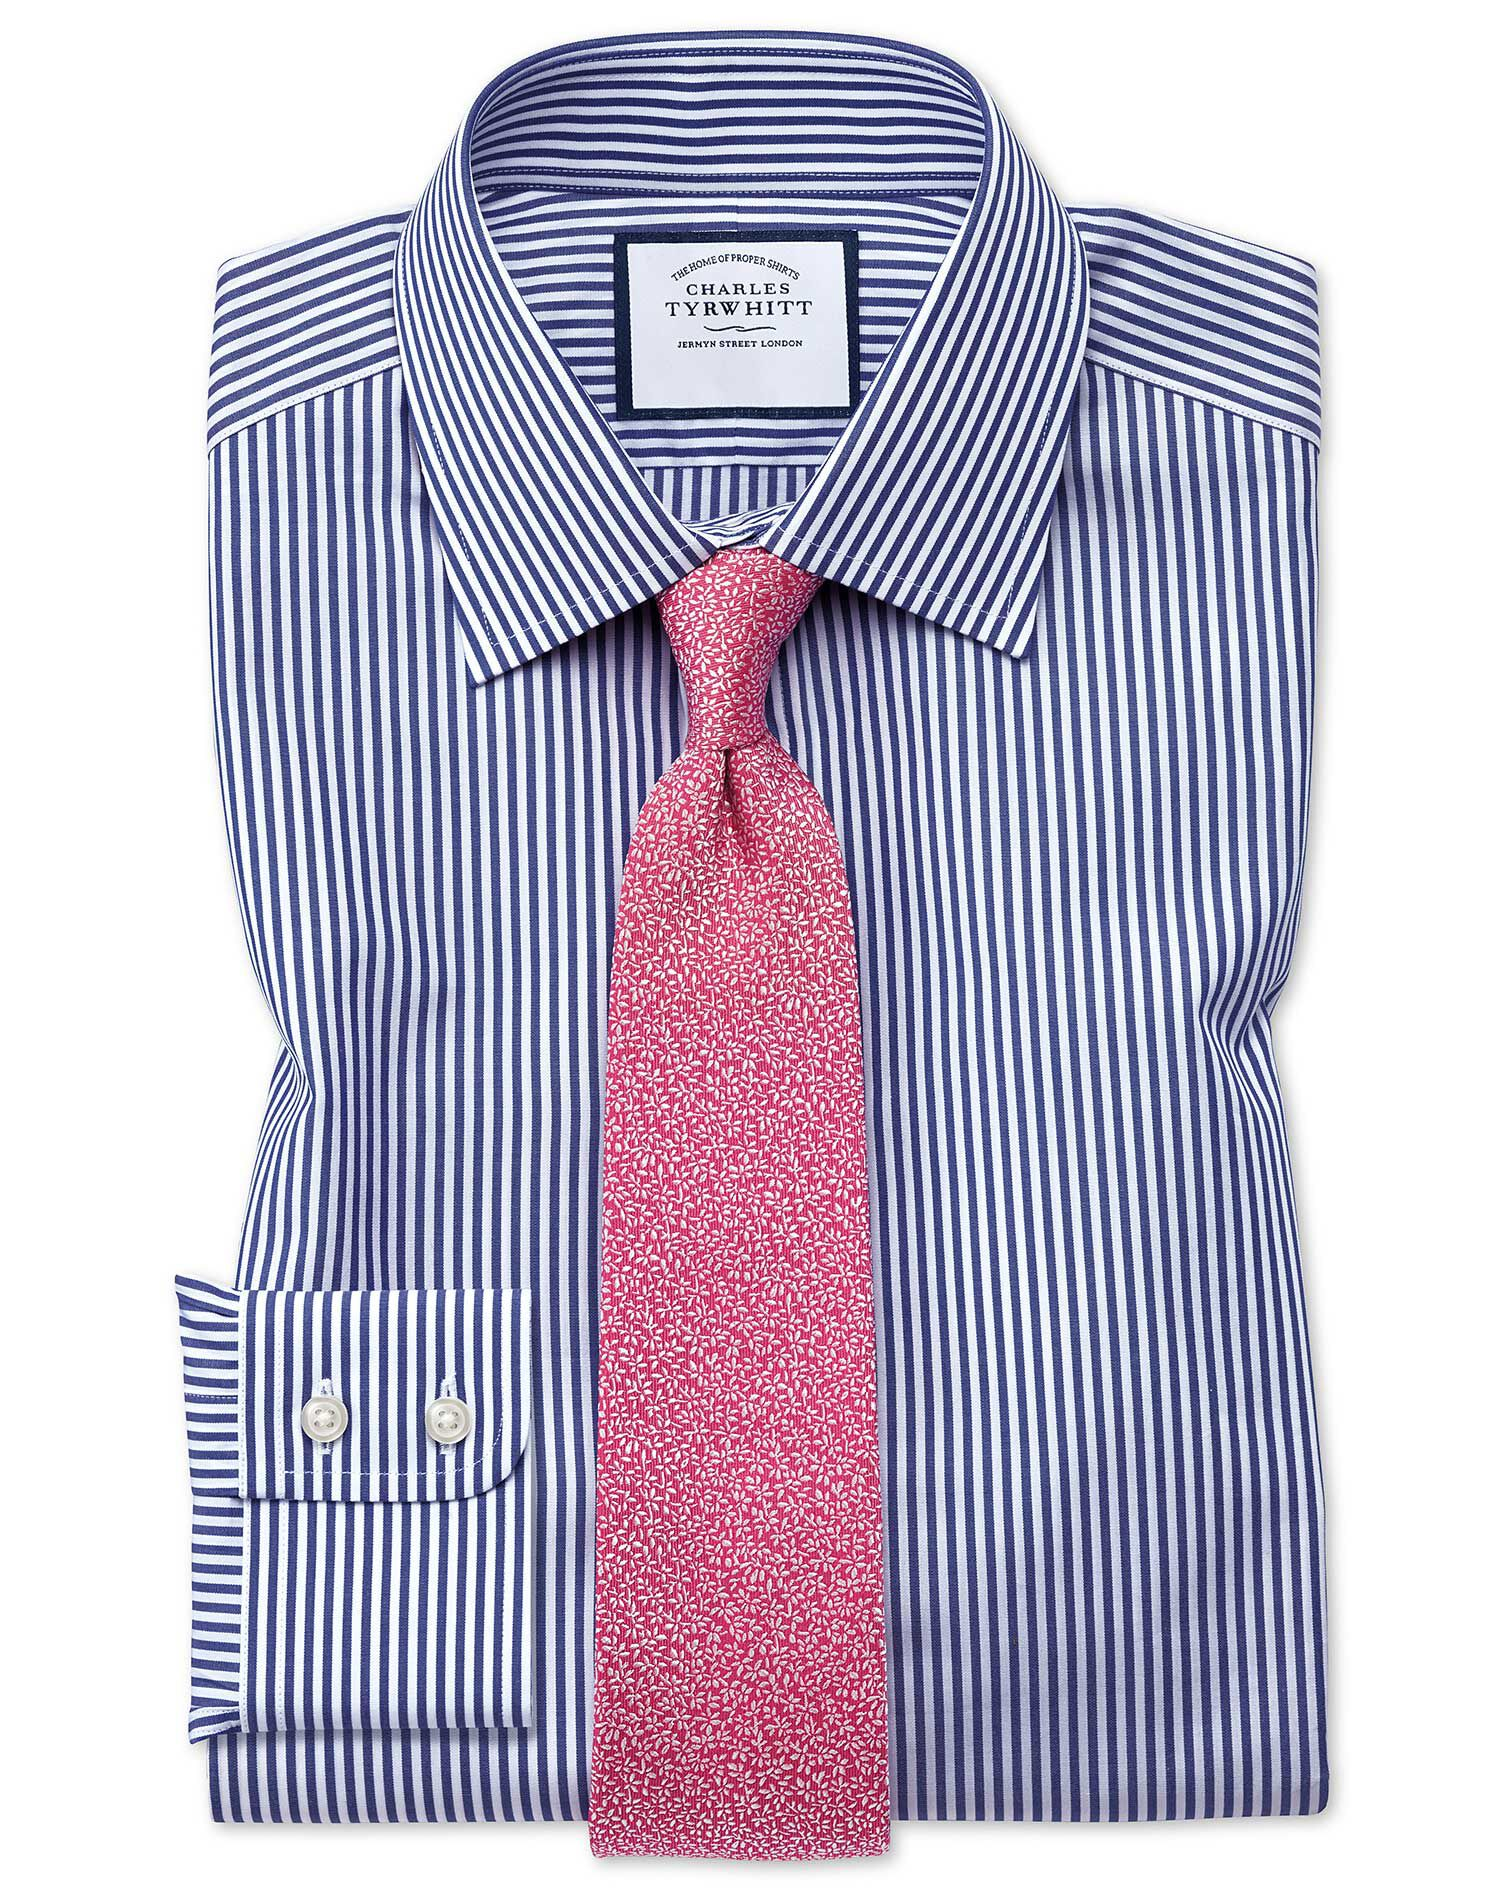 Extra Slim Fit Bengal Stripe Navy Blue Cotton Formal Shirt Double Cuff Size 14.5/32 by Charles Tyrwh